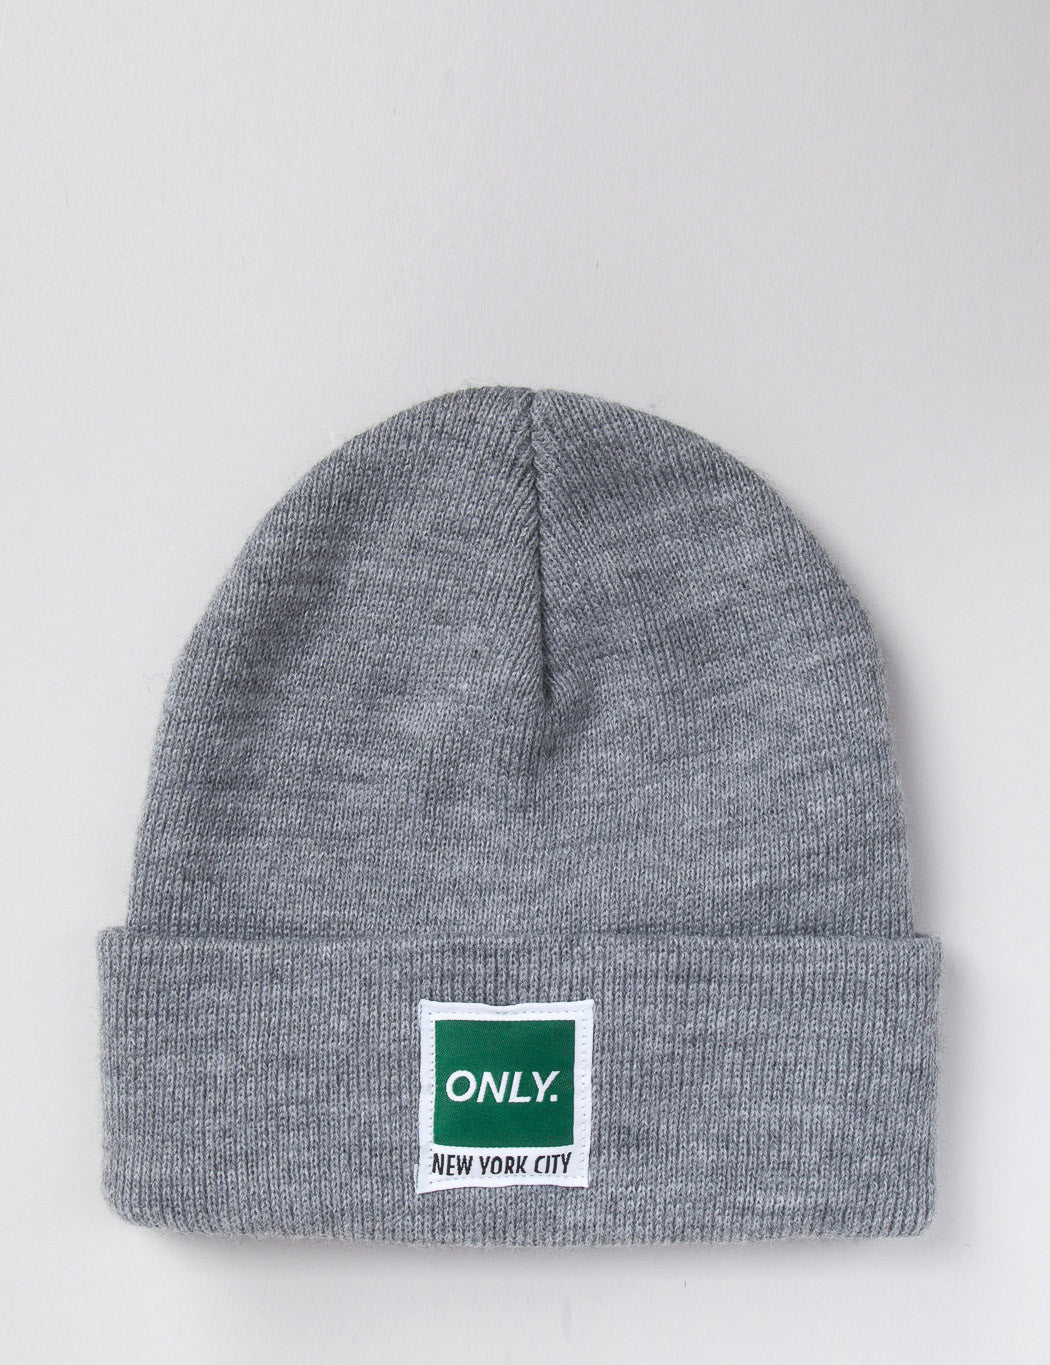 Only NY Messenger Beanie Hat - Grey